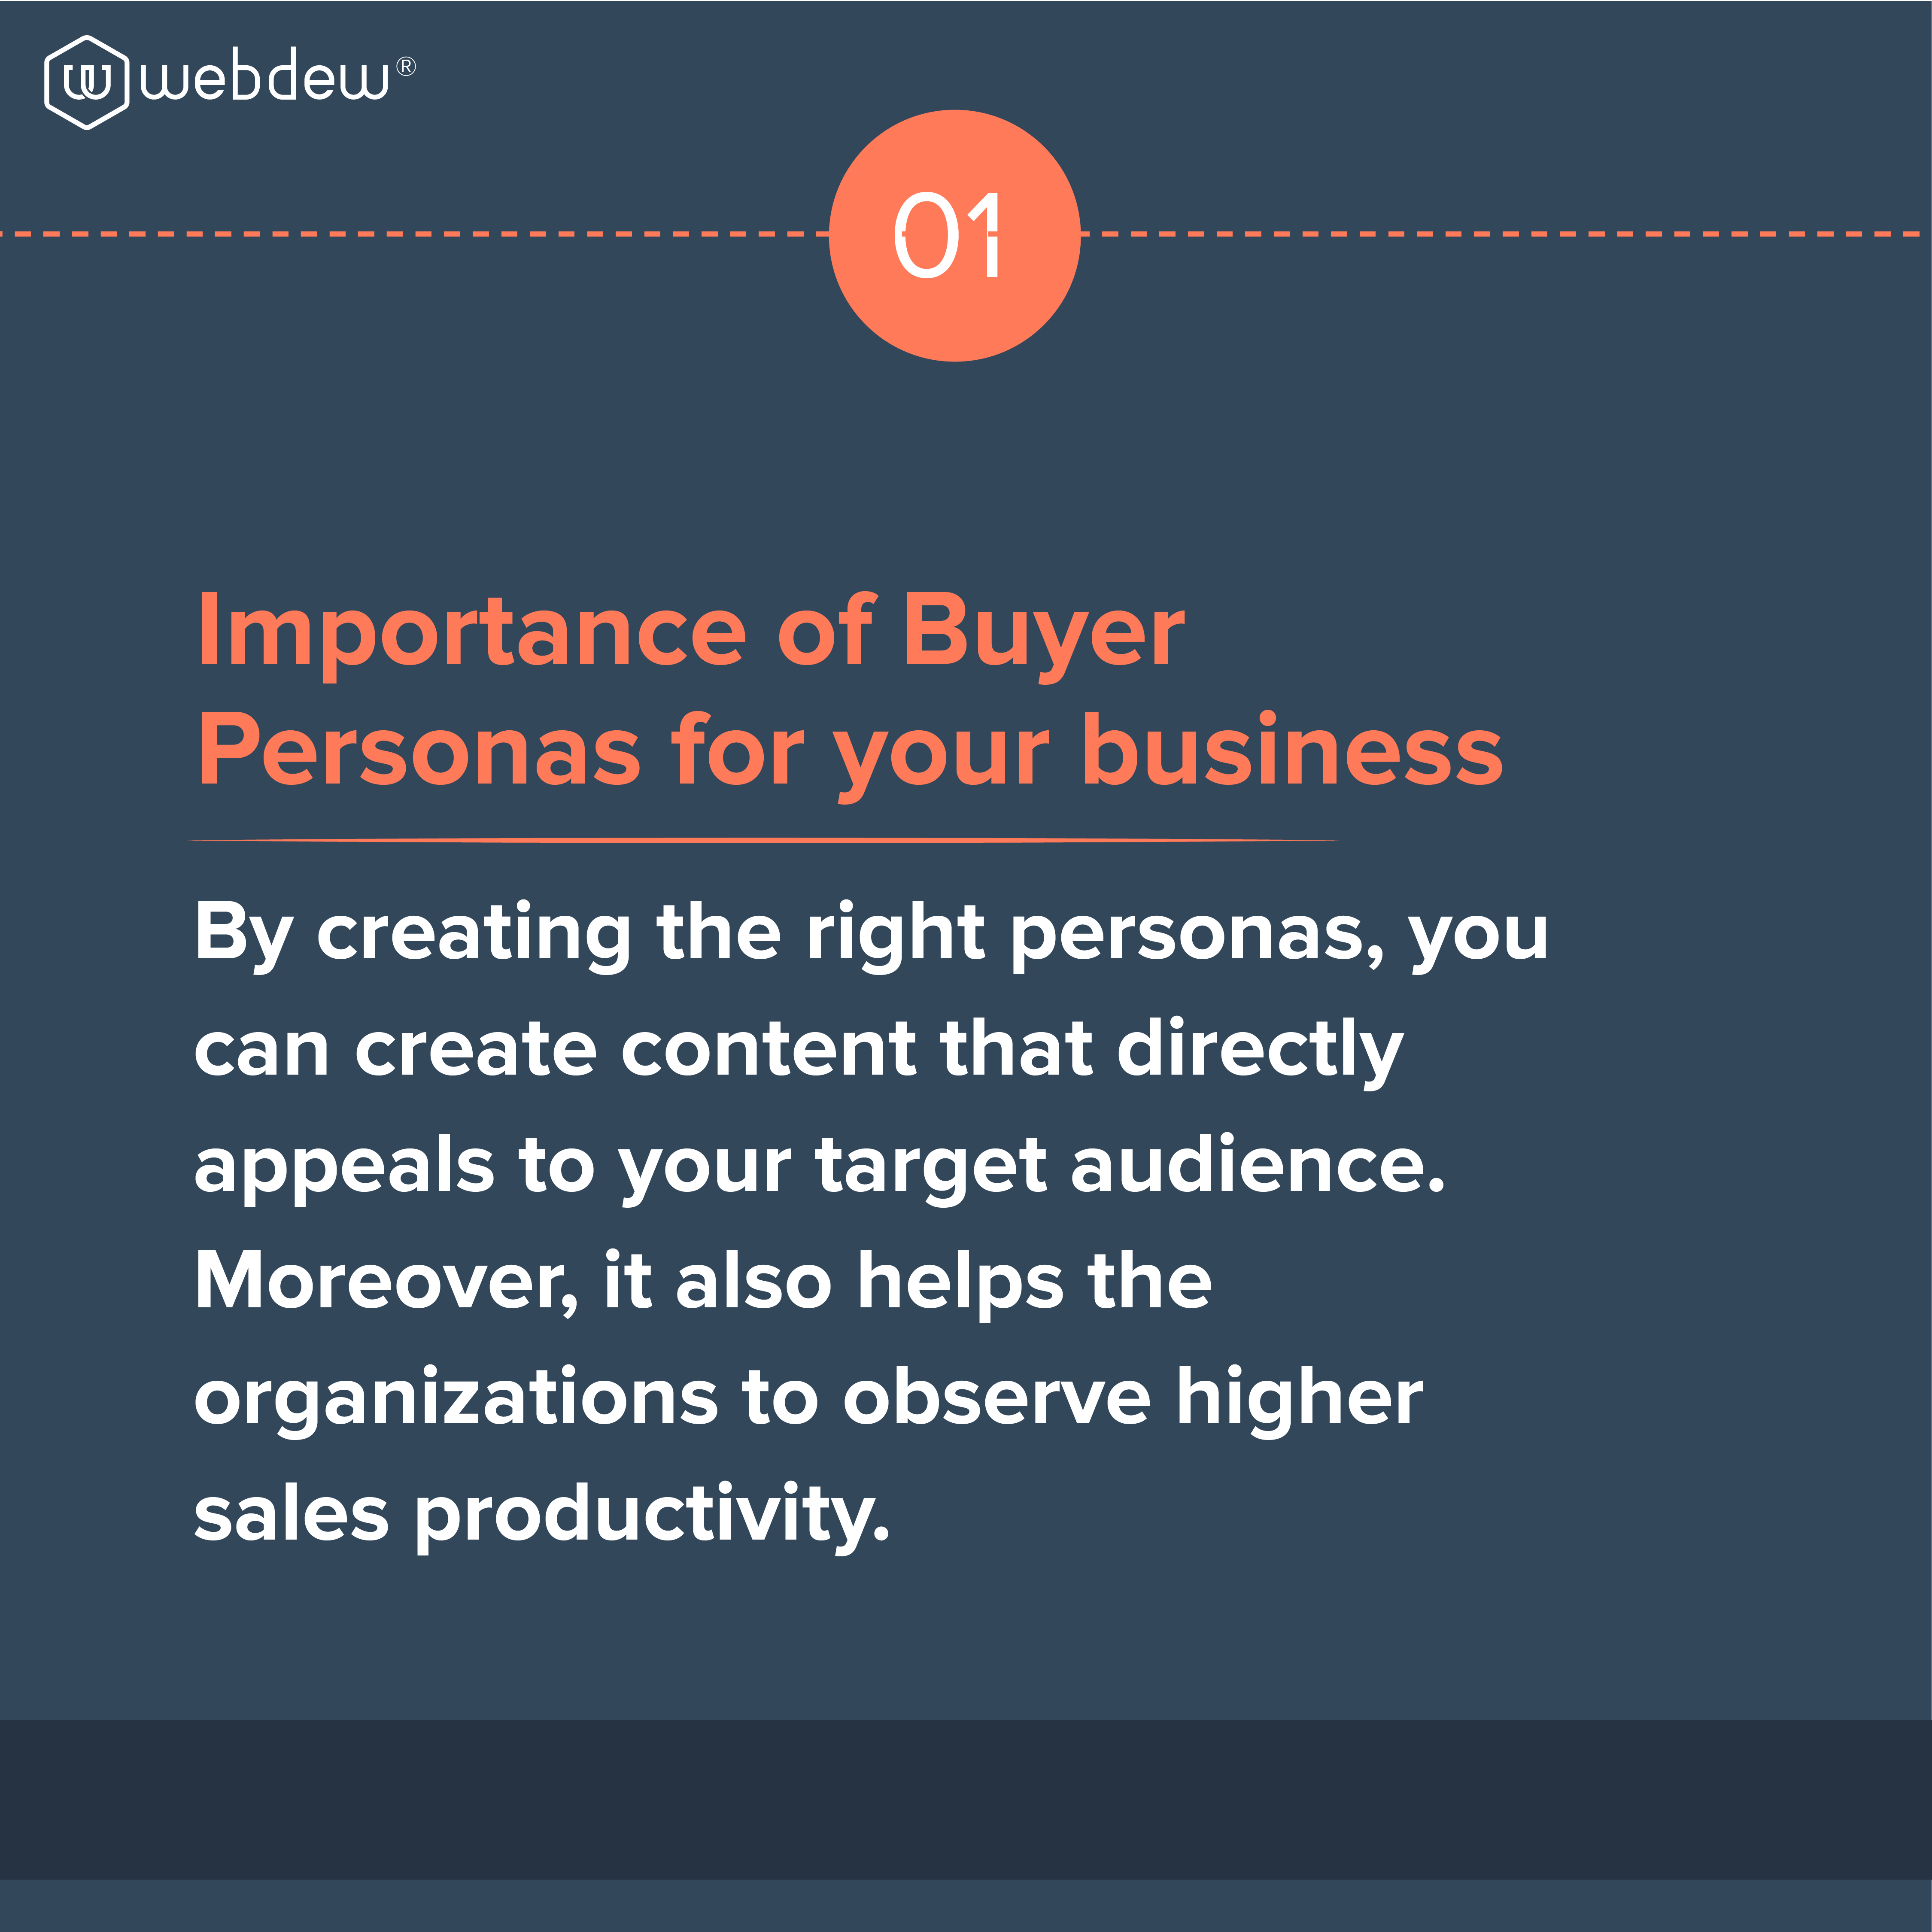 4. importance of buyer persona